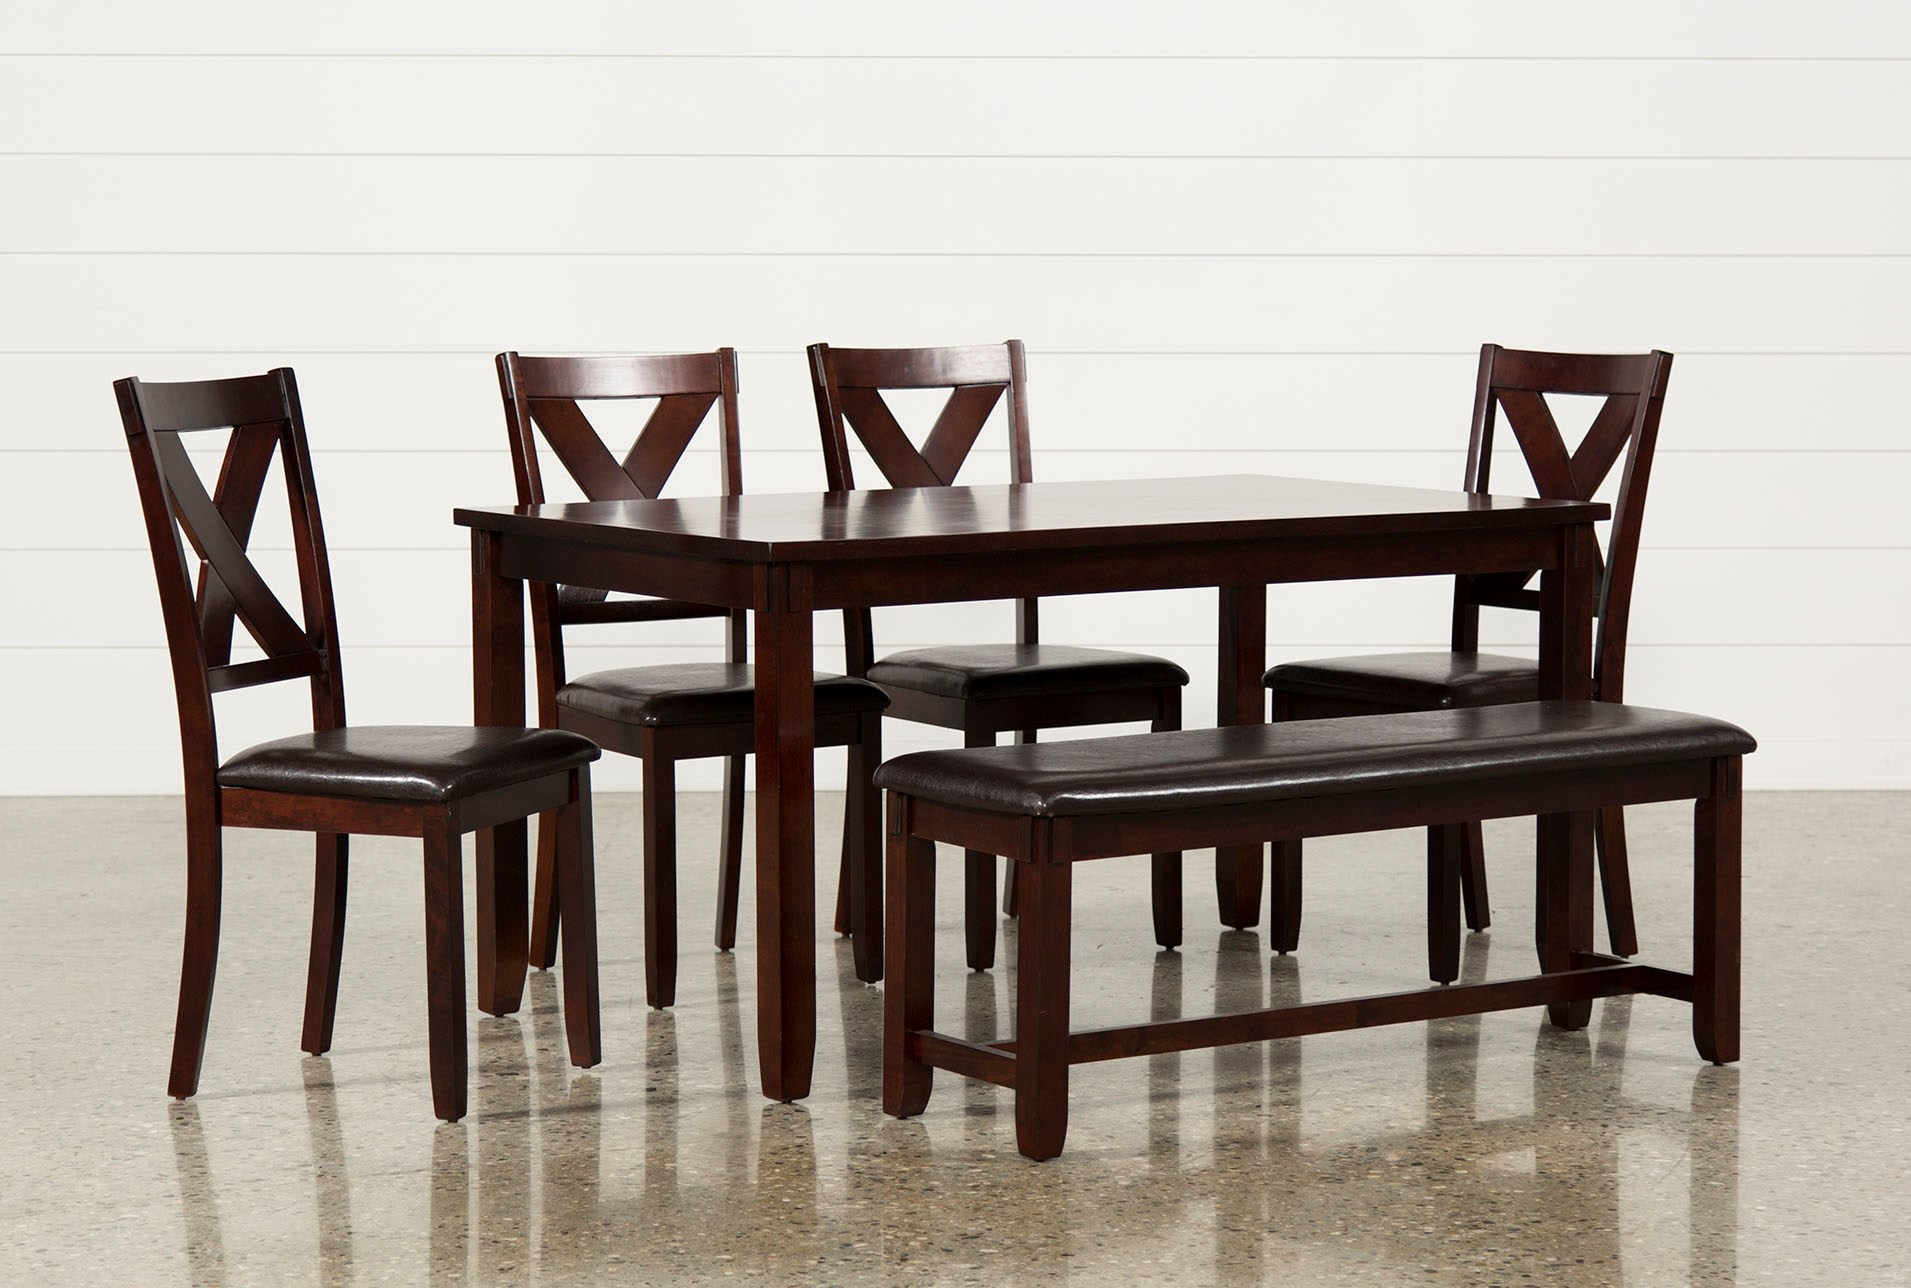 deb0b5ddc76bb Dakota 6 Piece Dining Set (Qty  1) has been successfully added to your Cart.